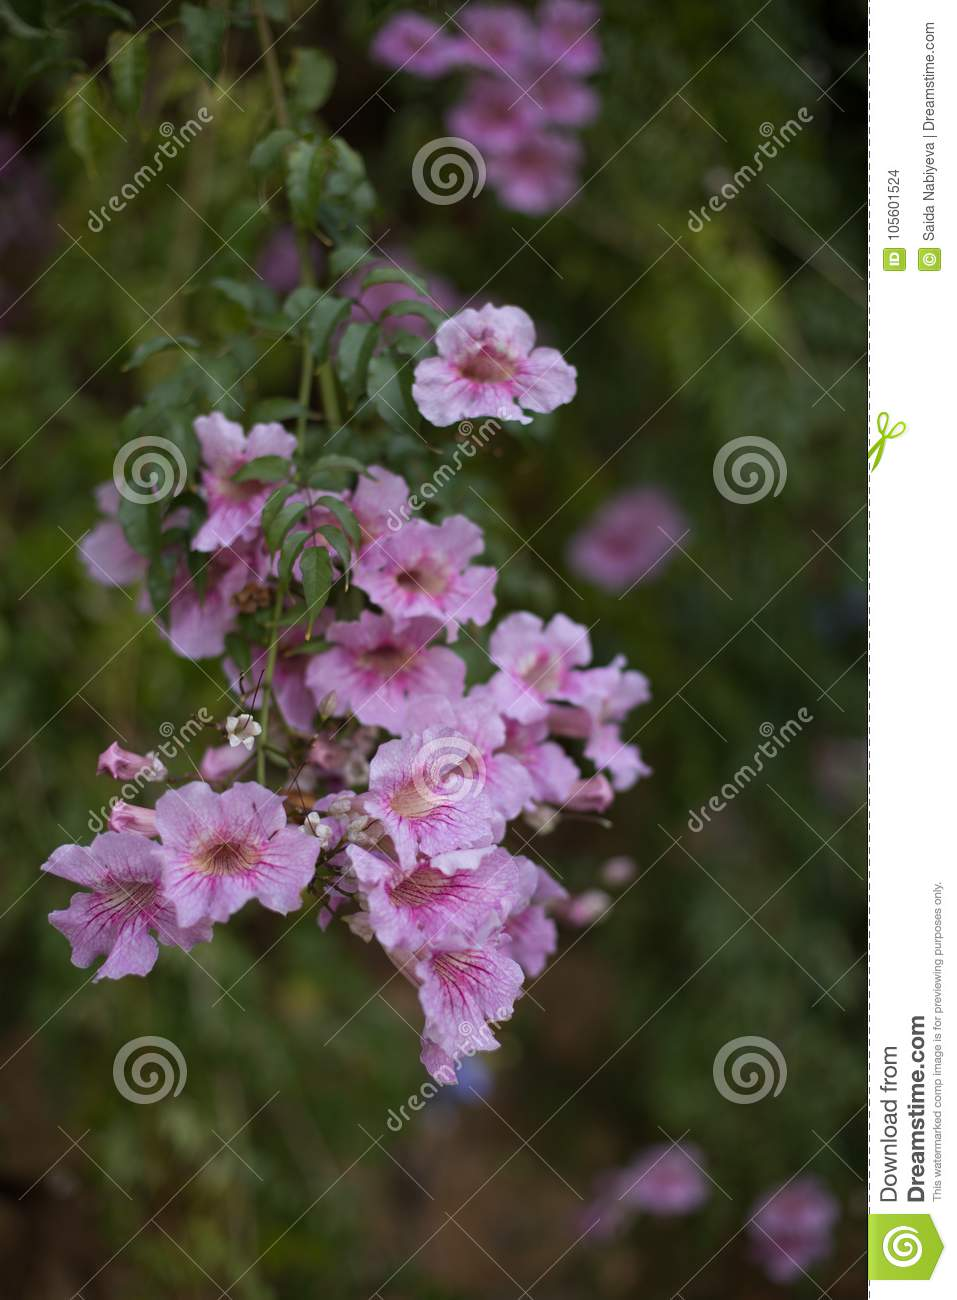 pink hanging flowers against blurred background stock photo image